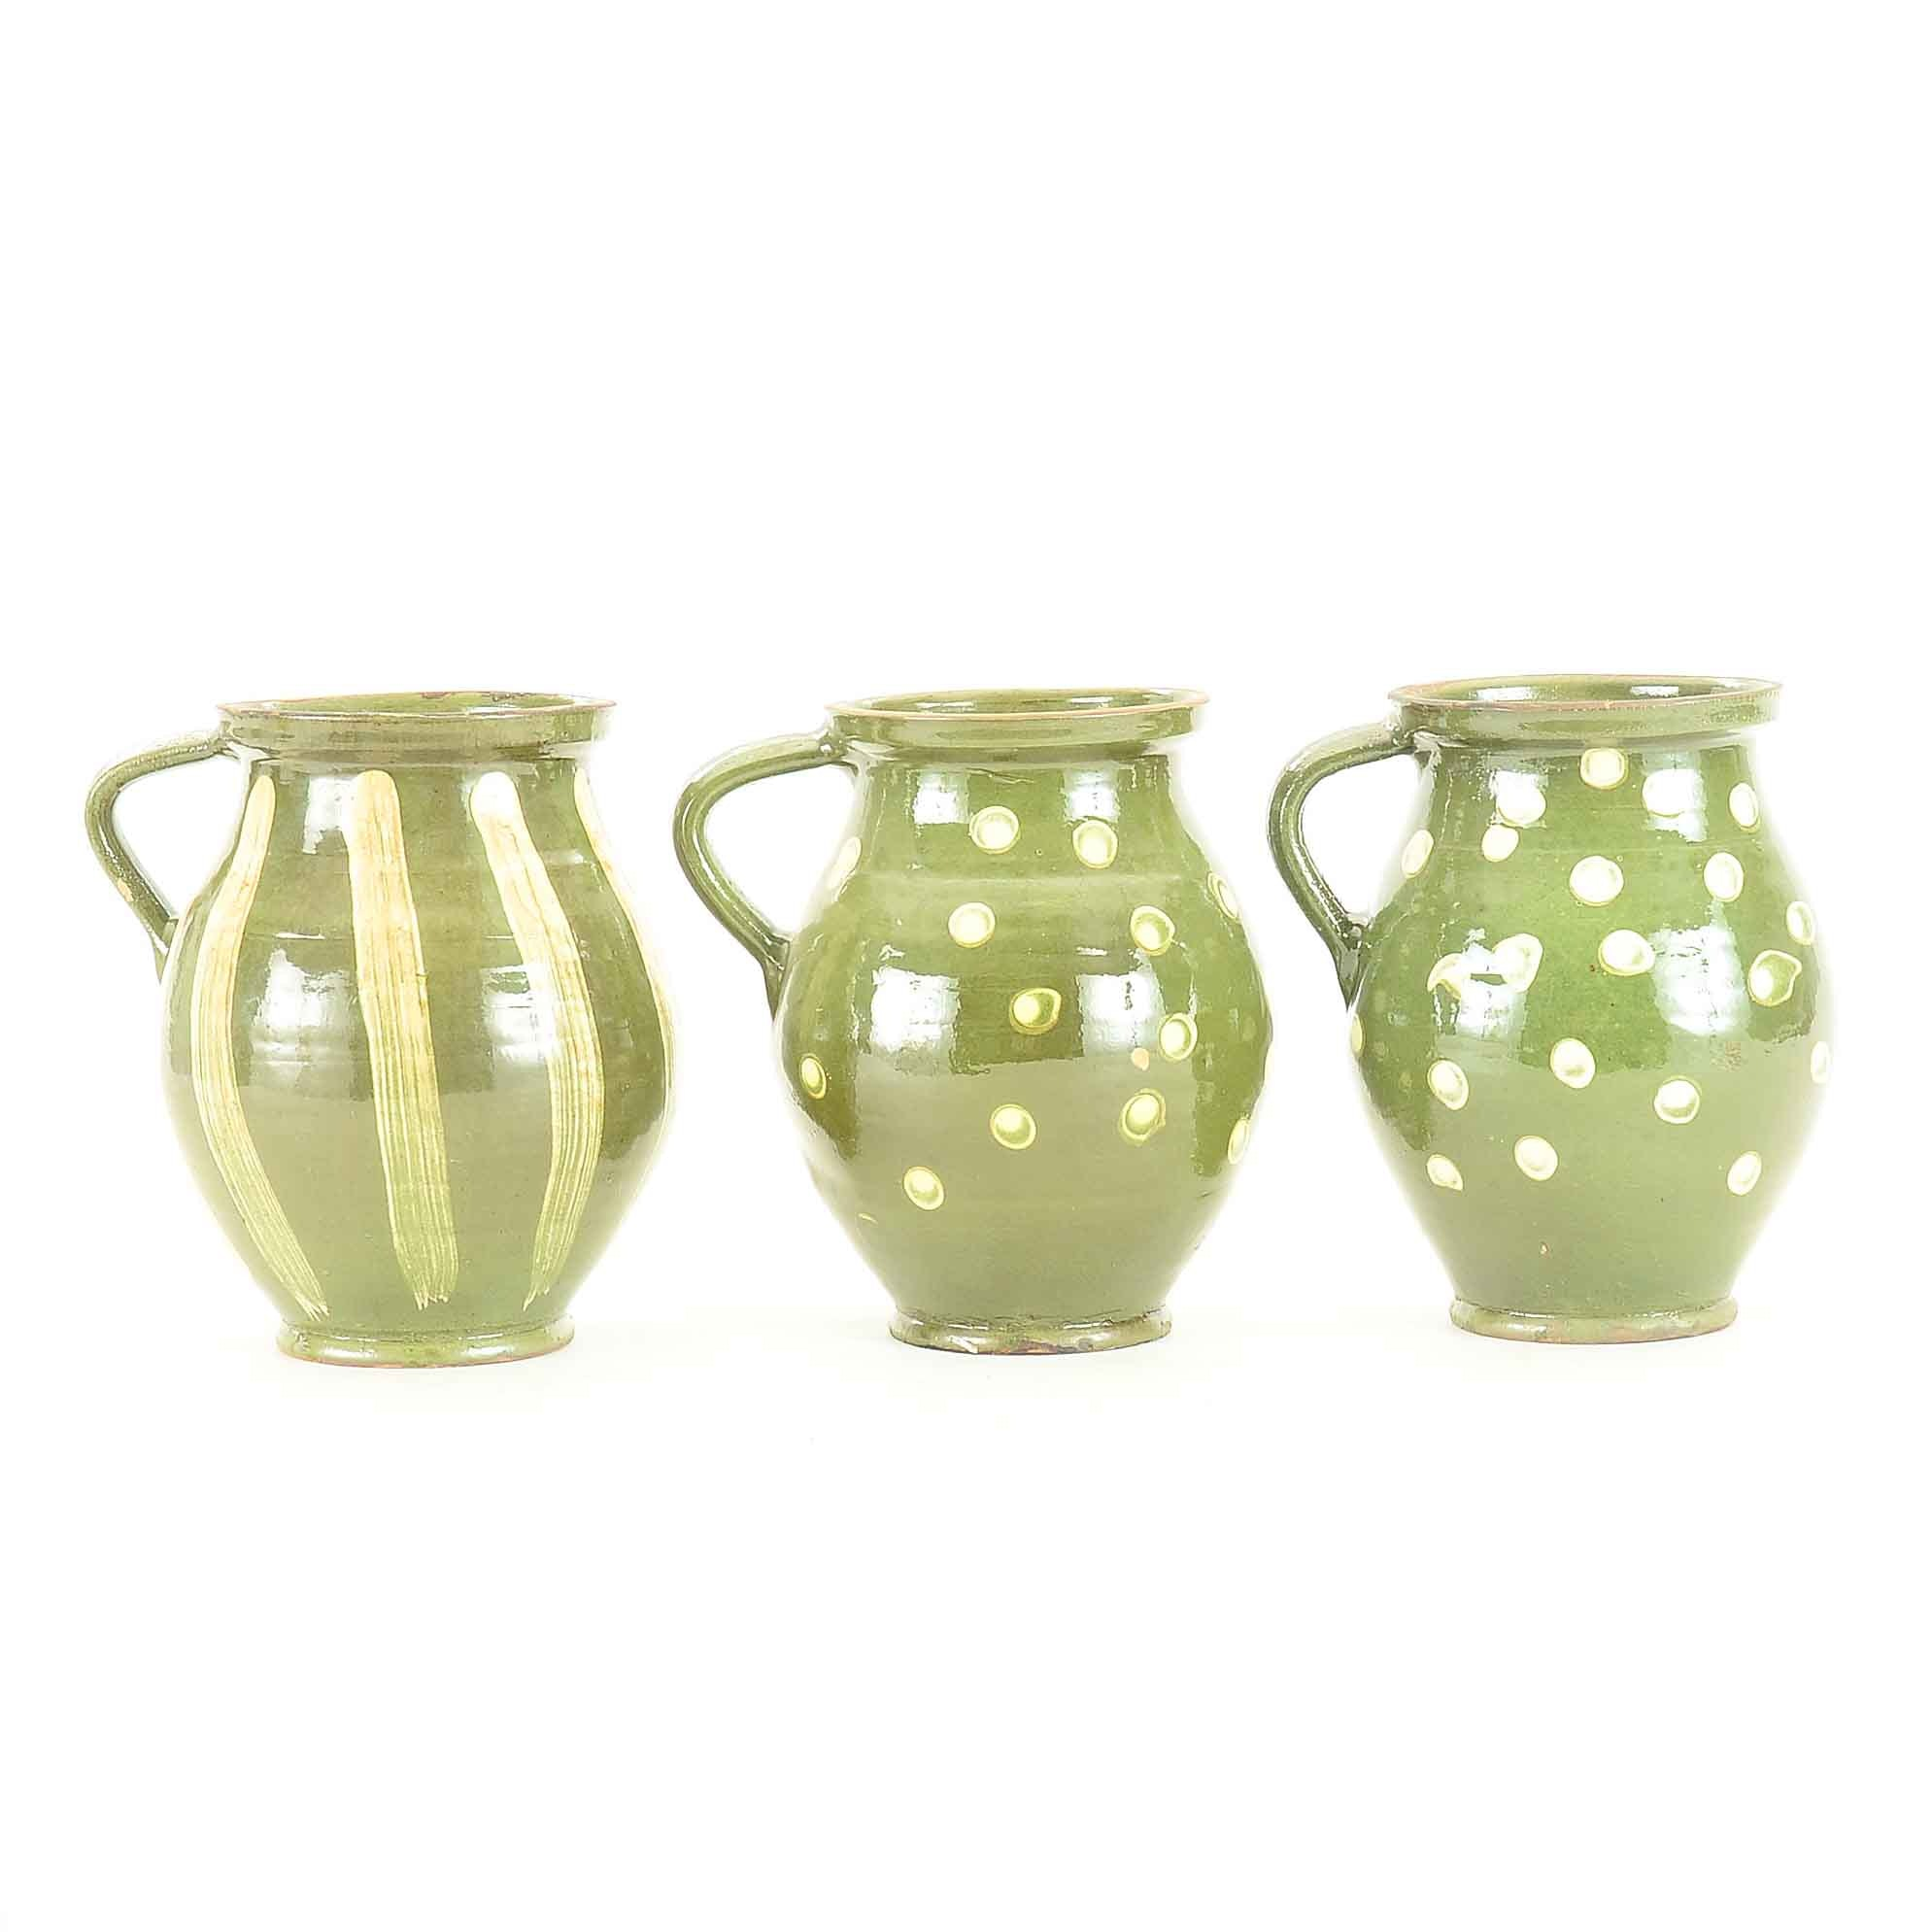 Hand Thrown French-Style Earthenware Water Jugs